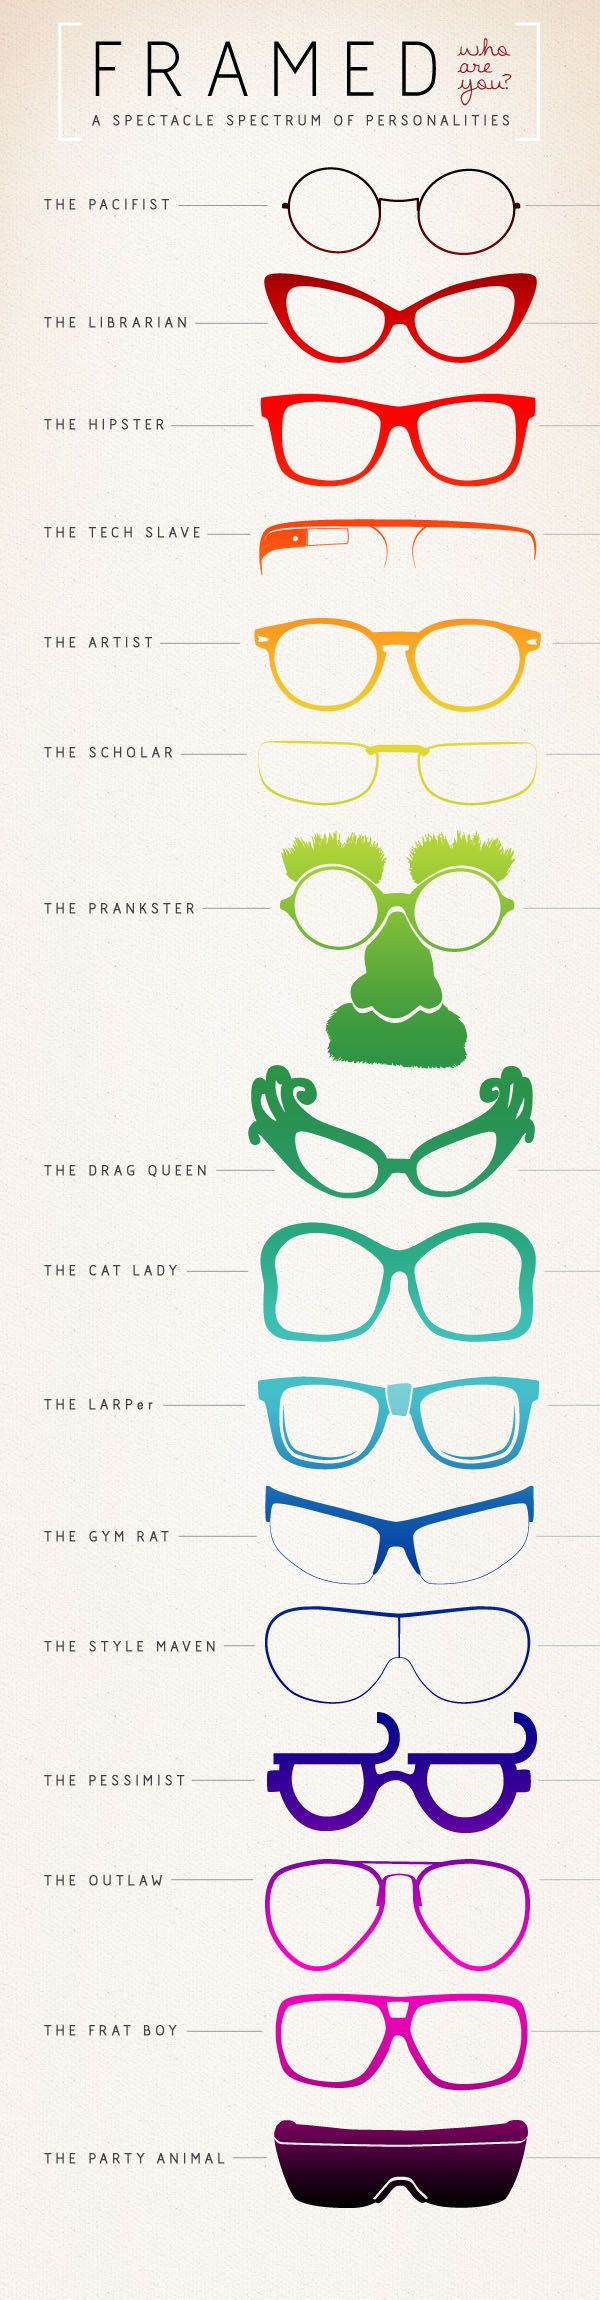 Personalities Explained with Glasses. Find Your Personality at Readers.com With an Unlimited Selection of Styles.